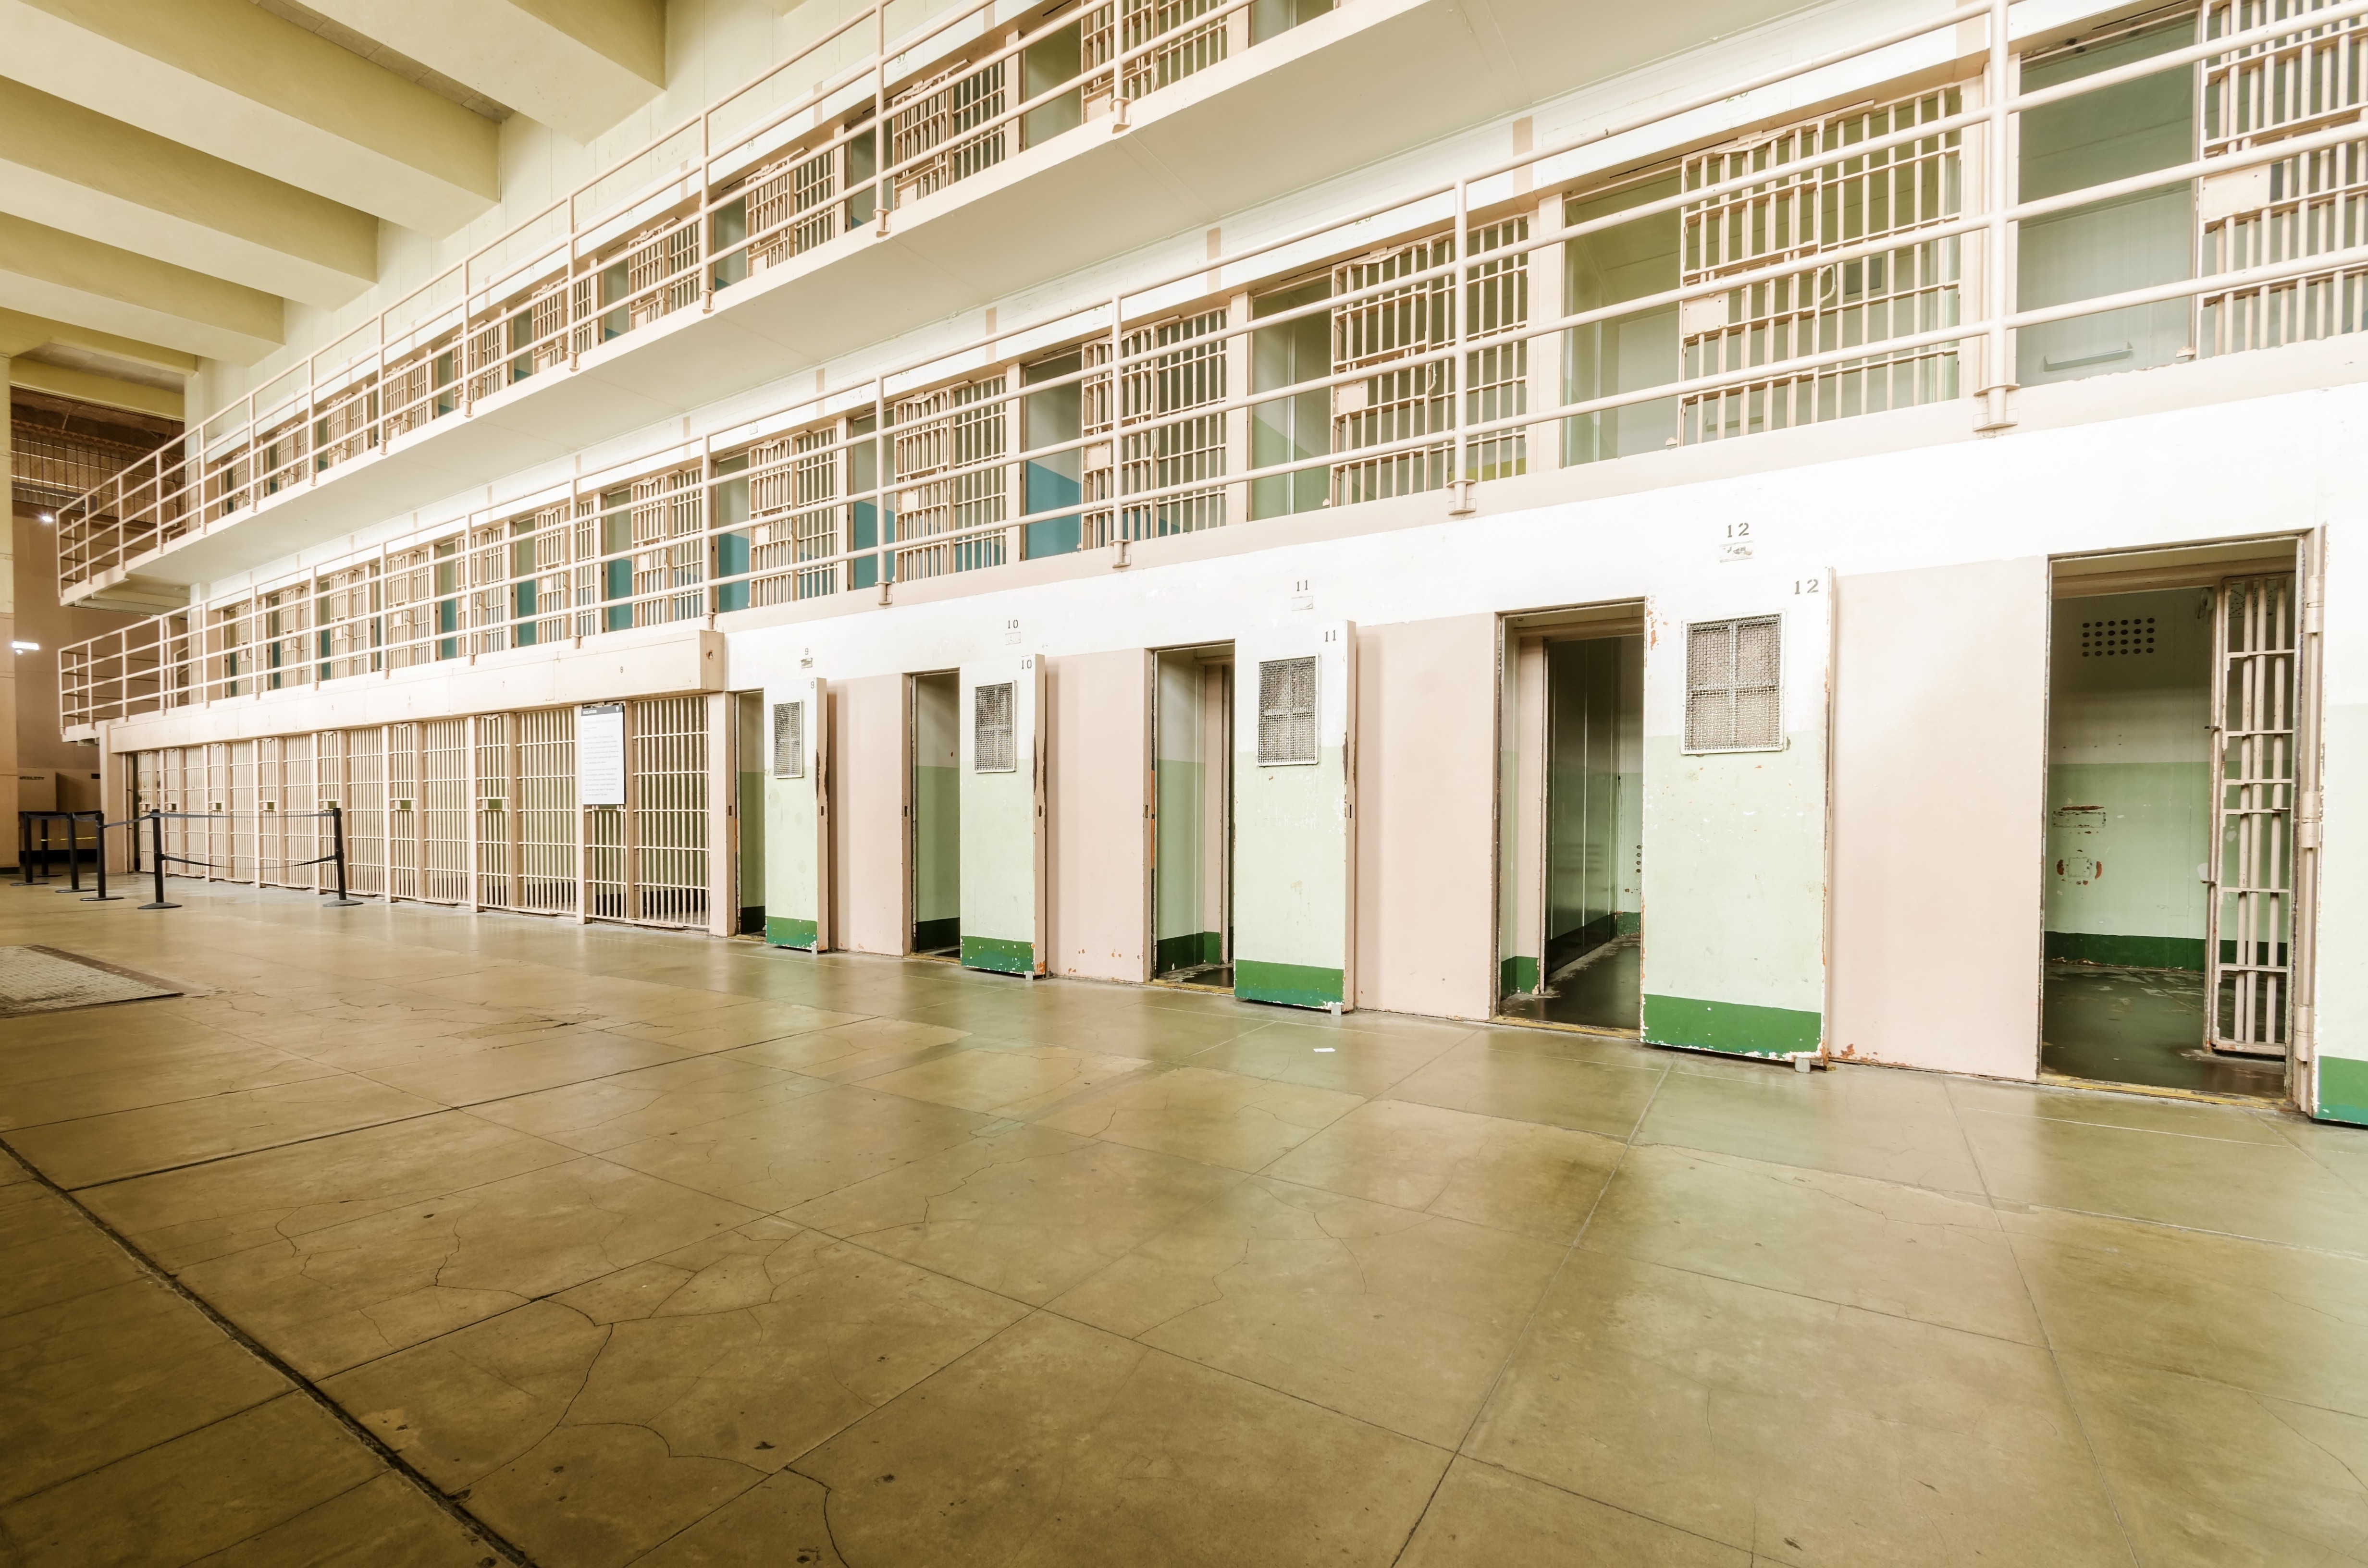 find an address of inmate at kinross correctional facility